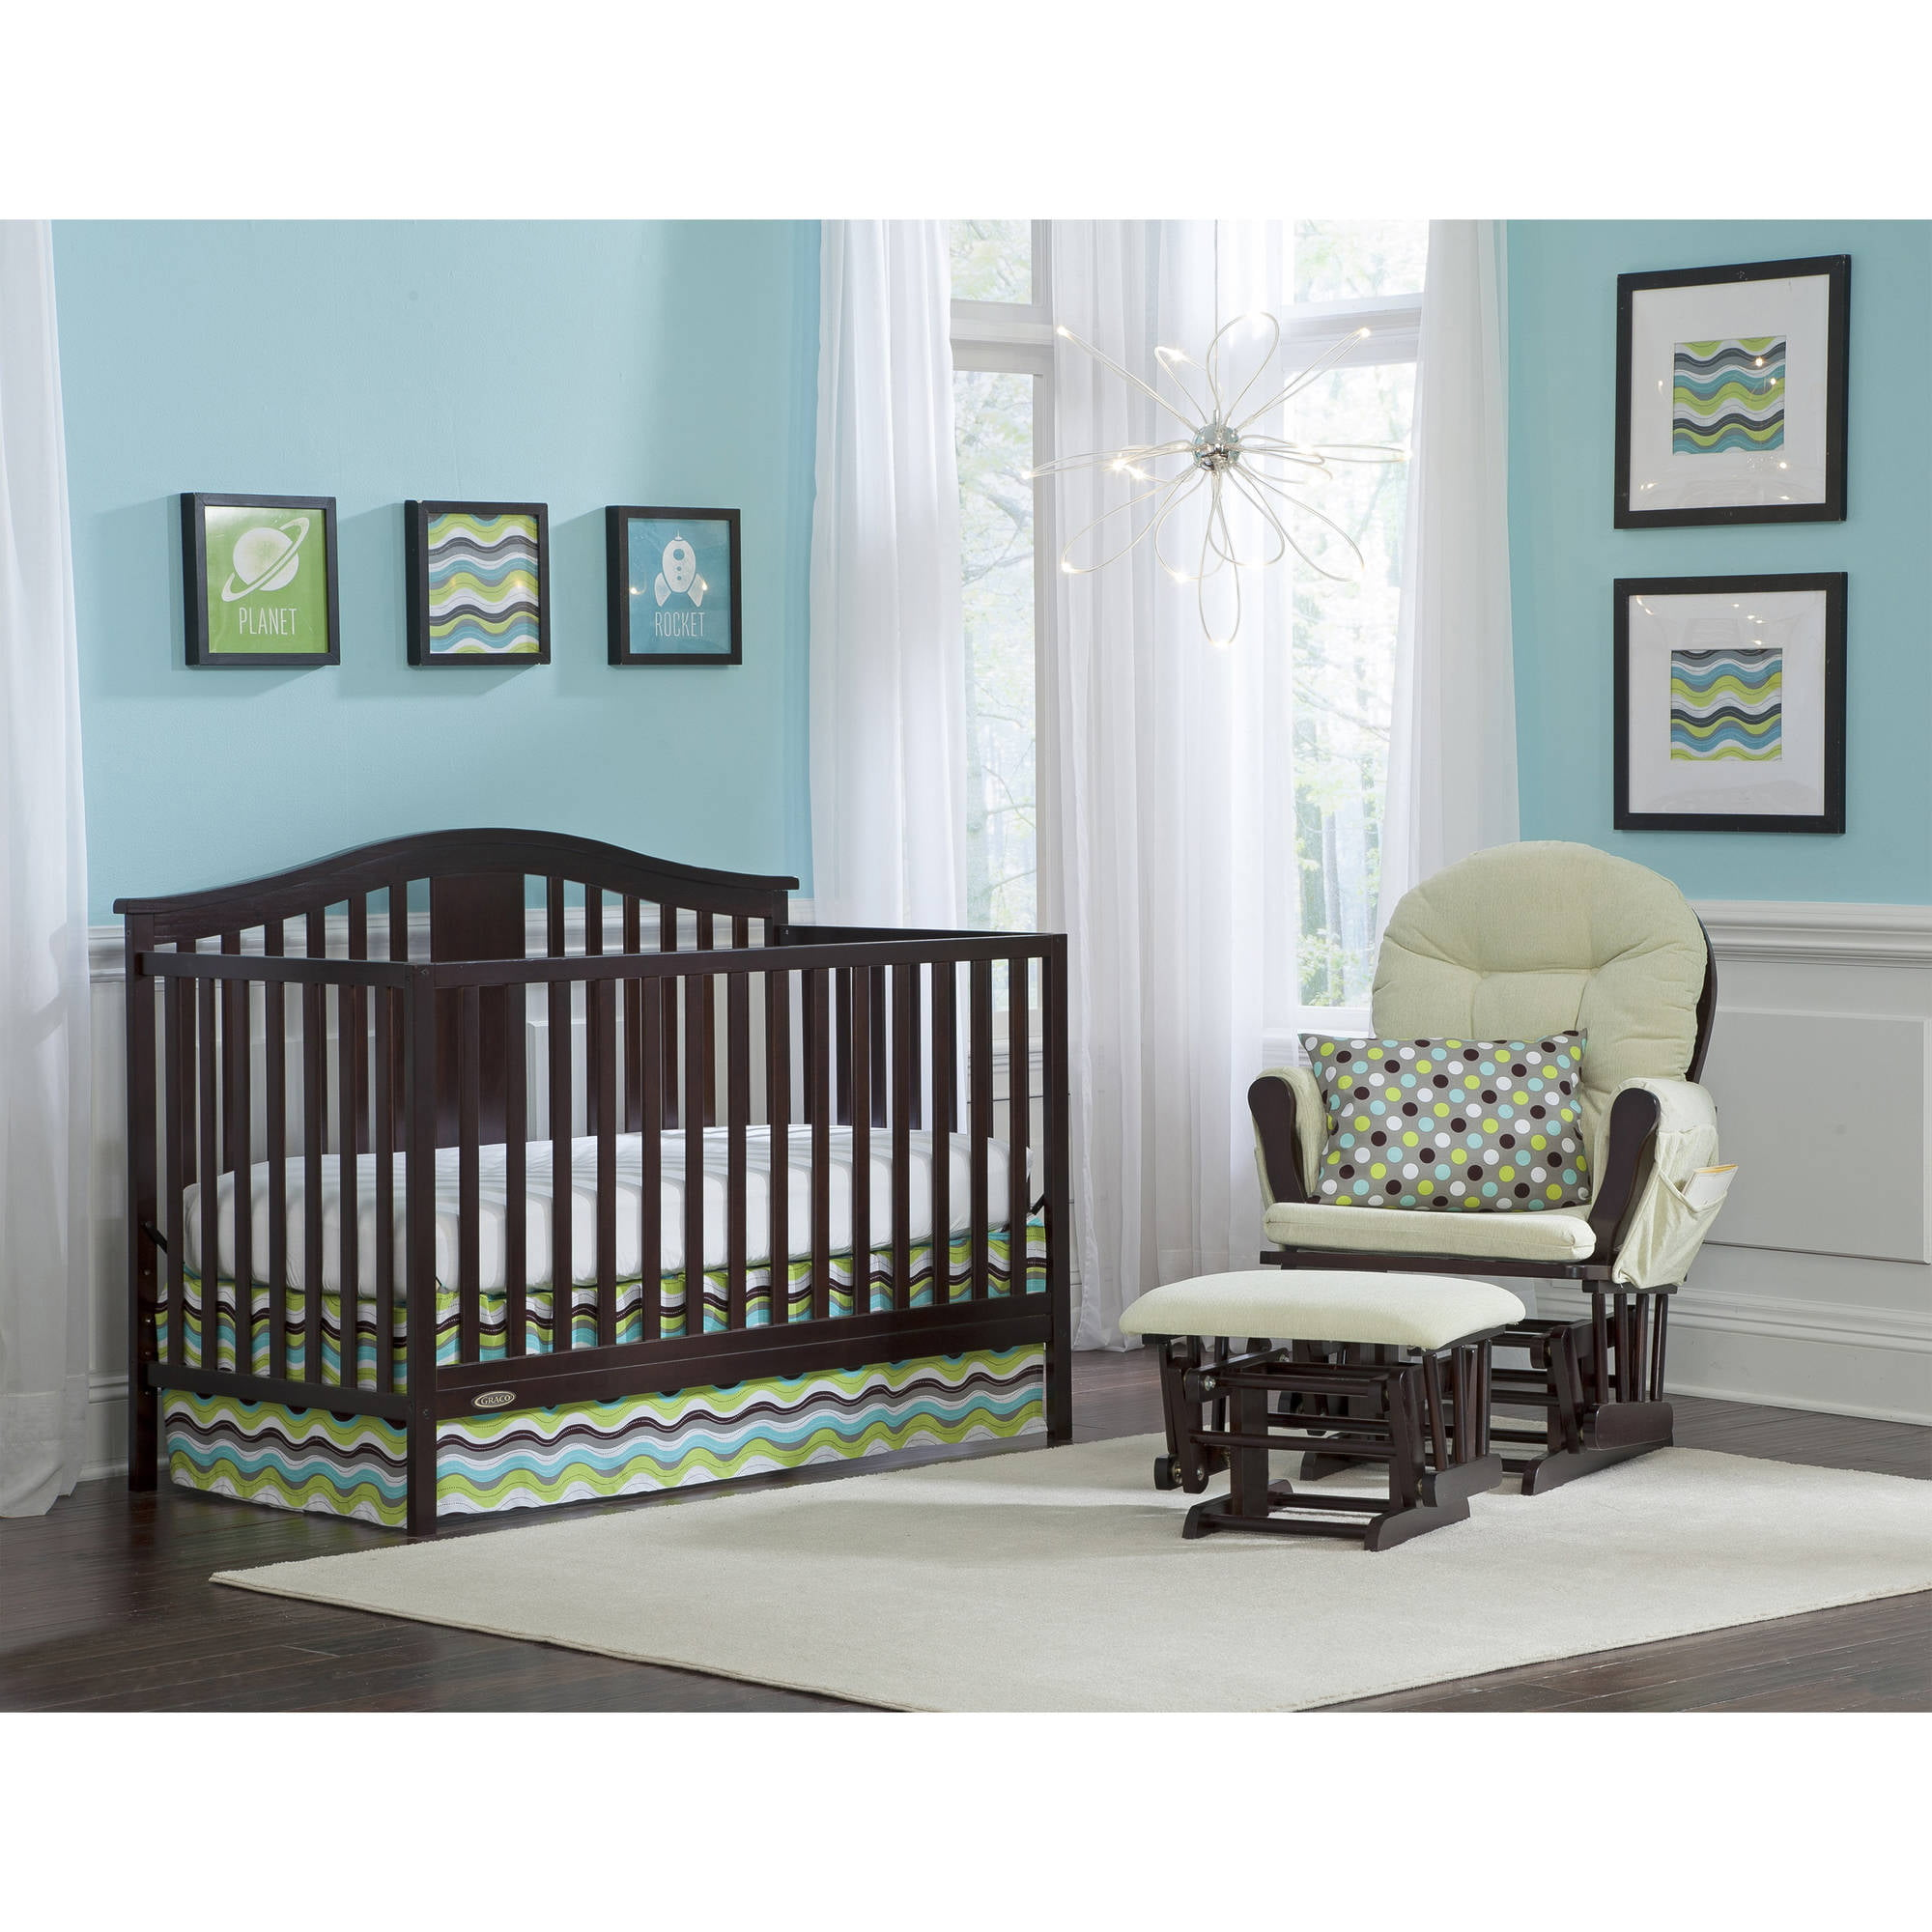 Convertible Crib Wood Espresso 4 In 1 W Mattress Included Nursery Furniture 56927096428 Ebay